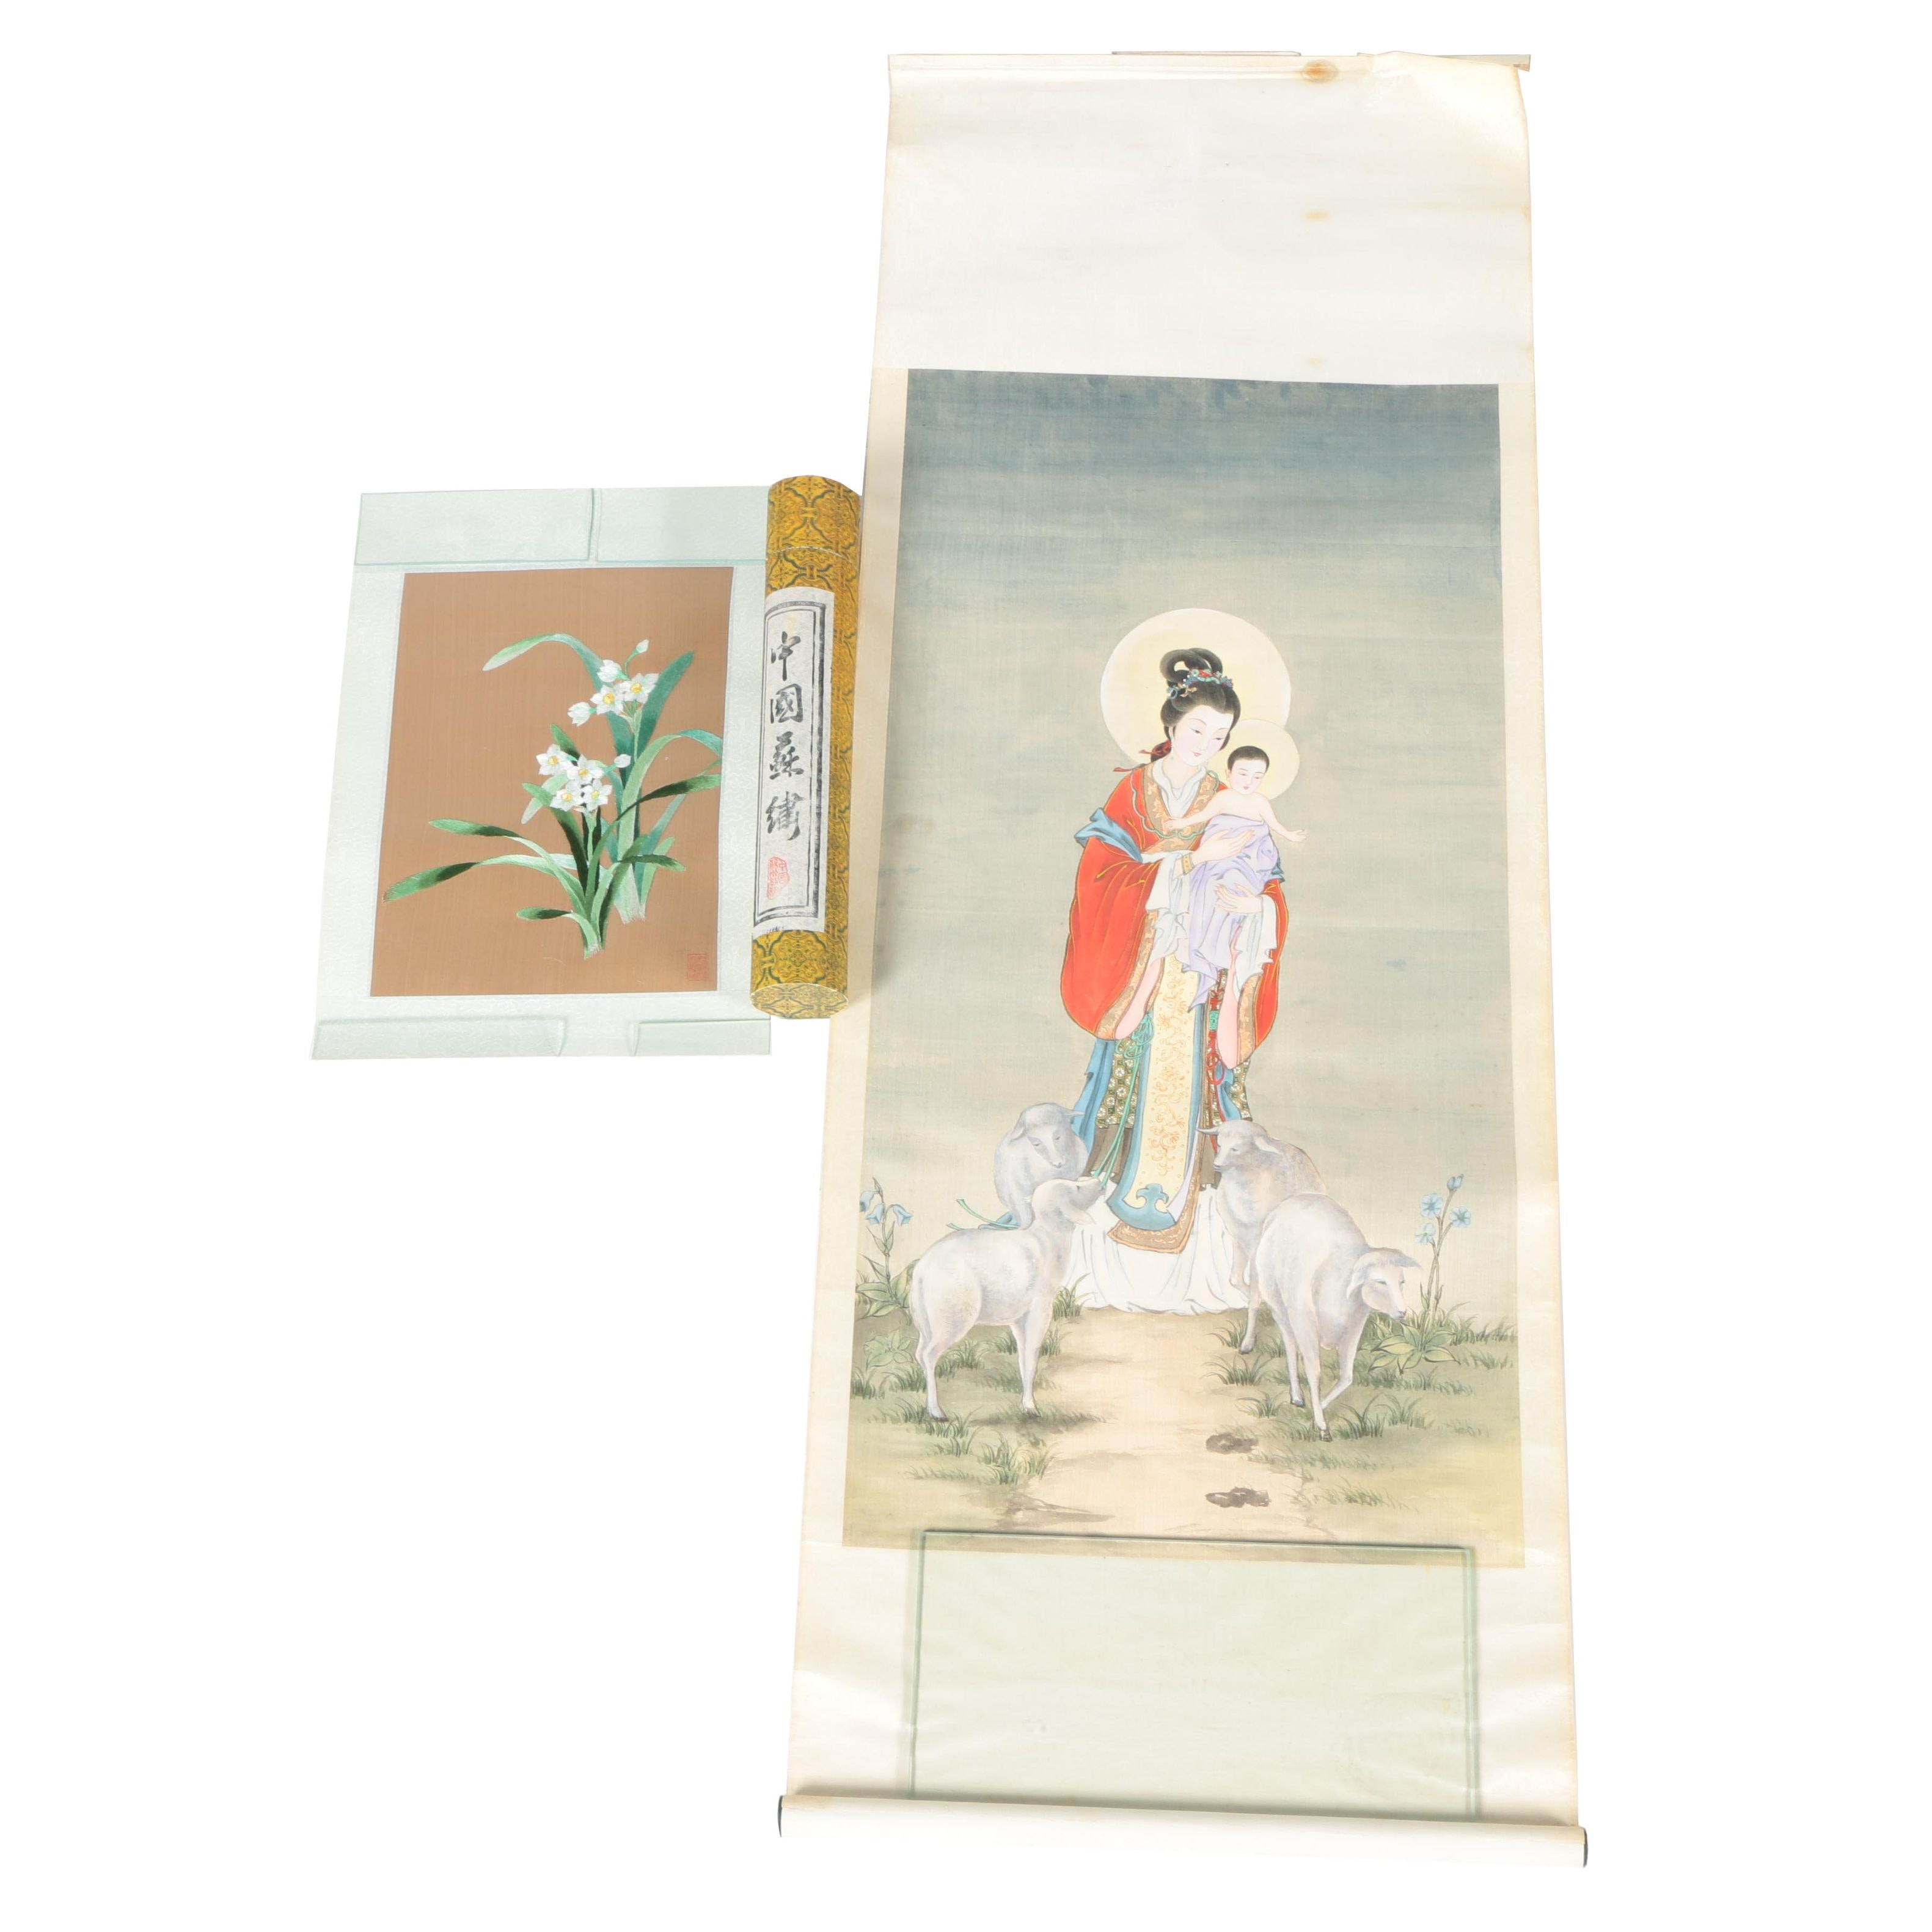 East Asian Painted and Embroidered Scrolls